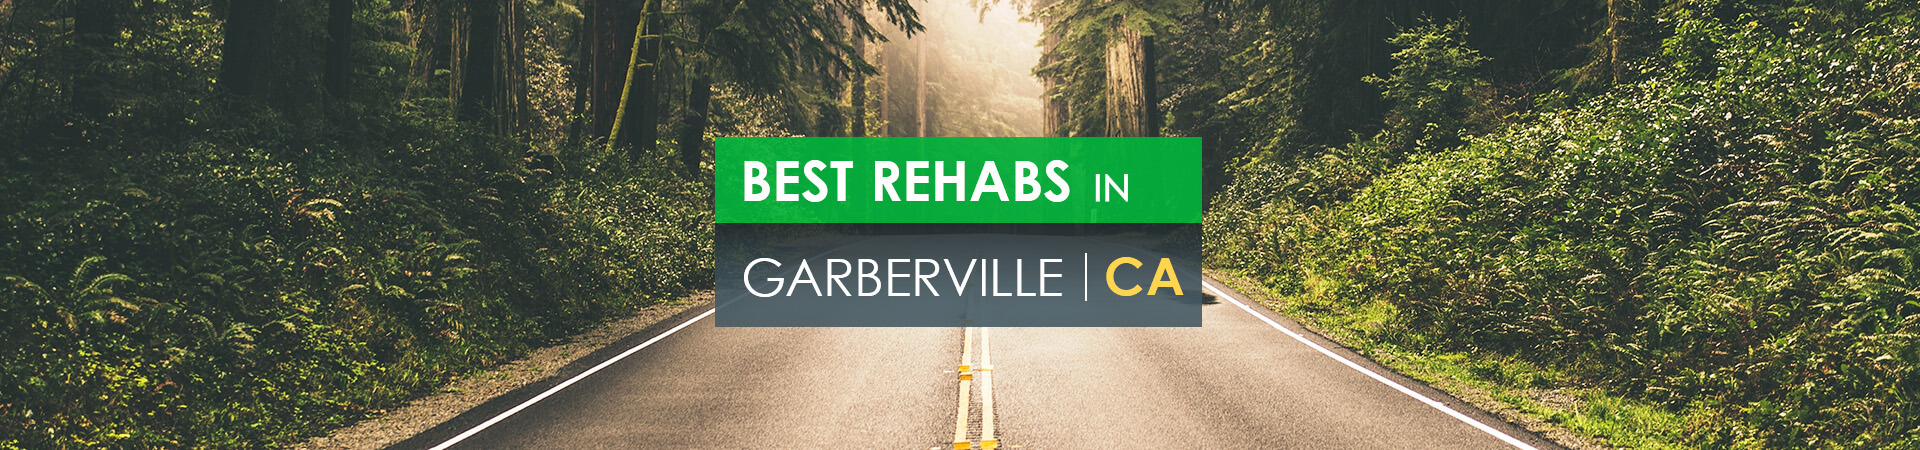 Best rehabs in Garberville, CA